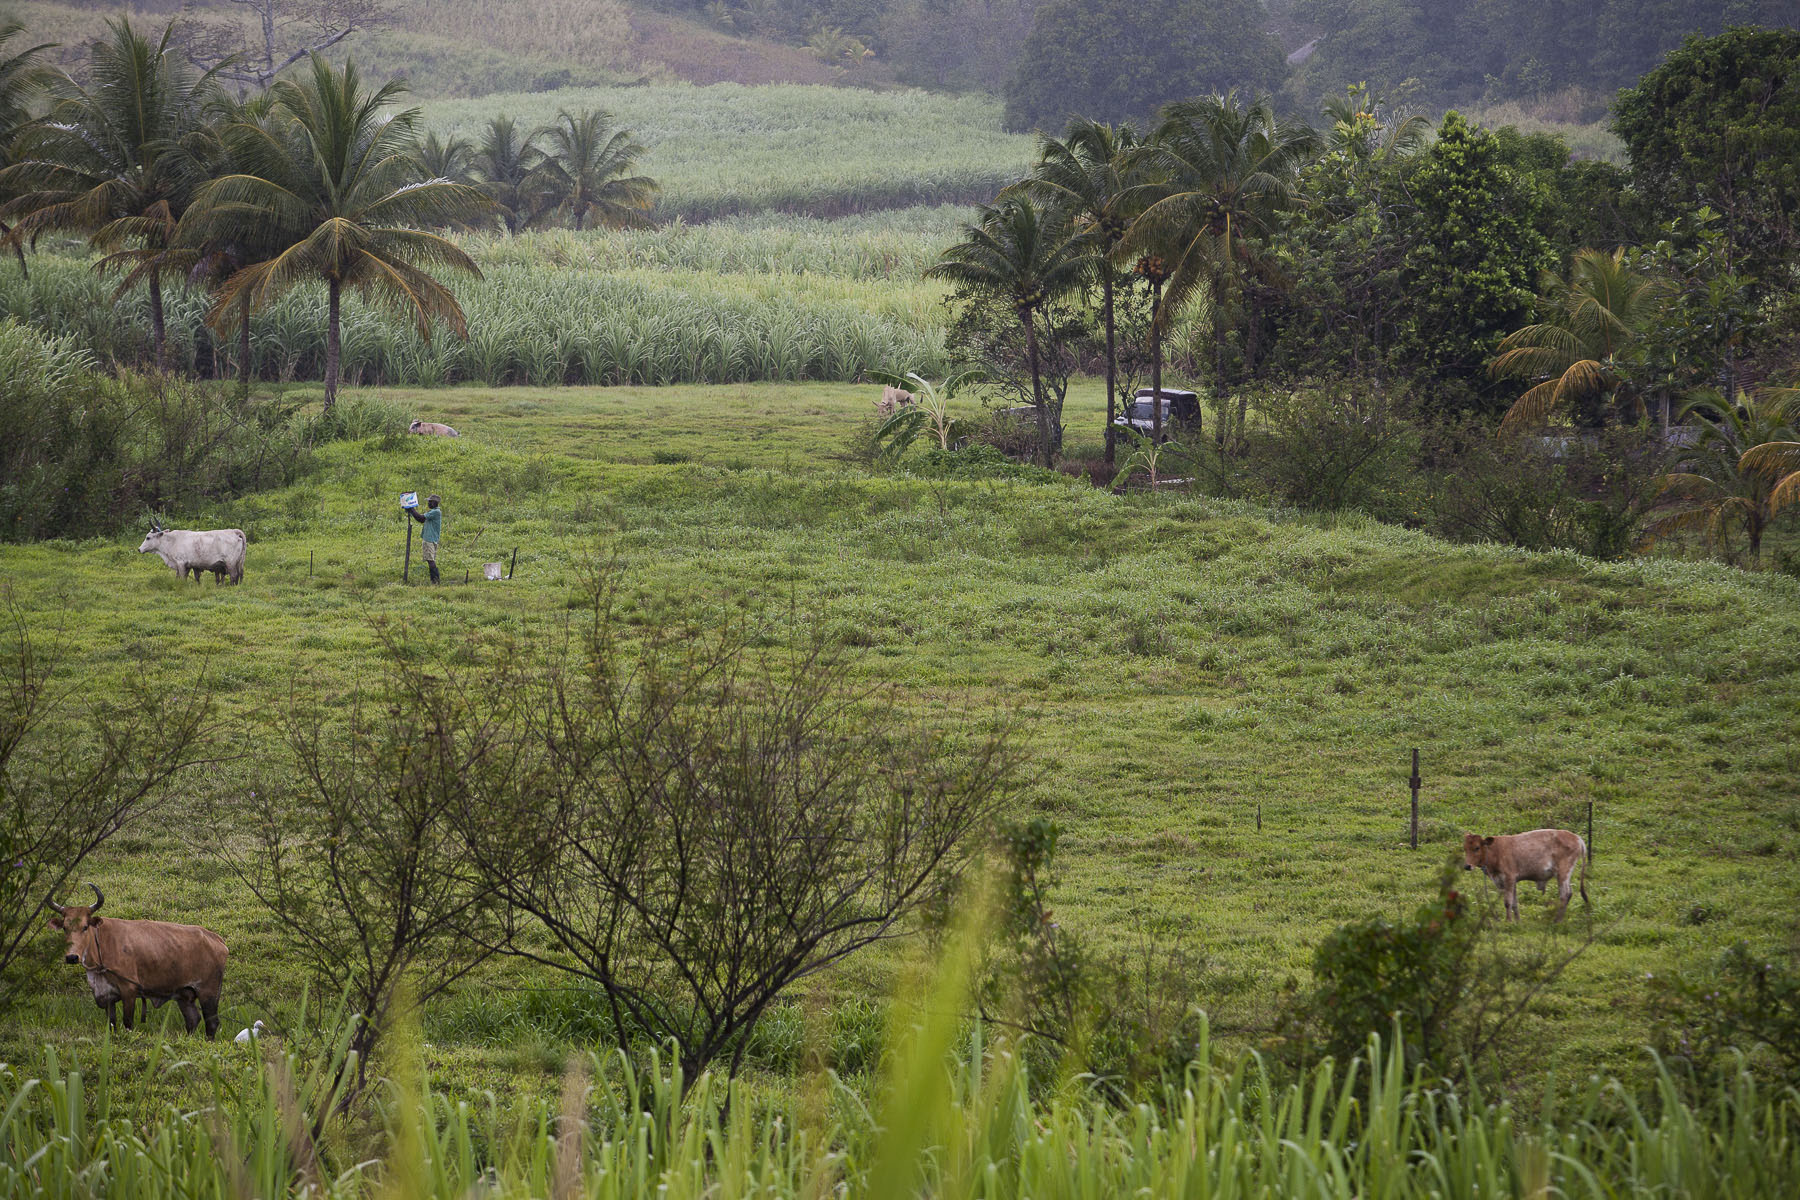 A farmer and his cows by a sugar cane field on the Traversière Road on March 2009